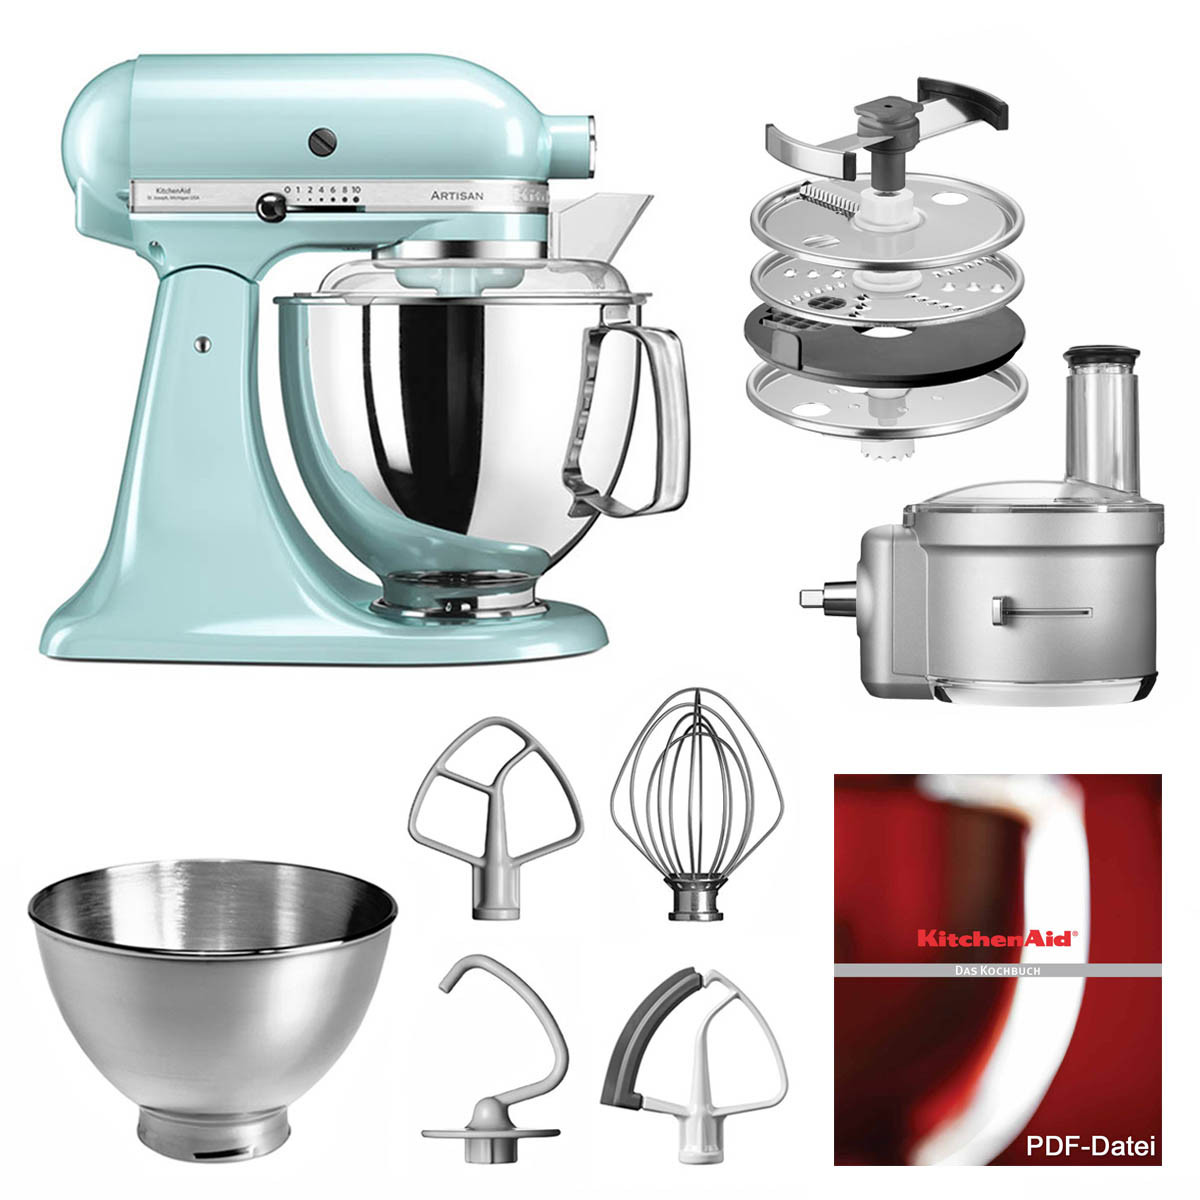 Foooodprocessor Set mit KitchenAid Küchenmaschine in Eisblau